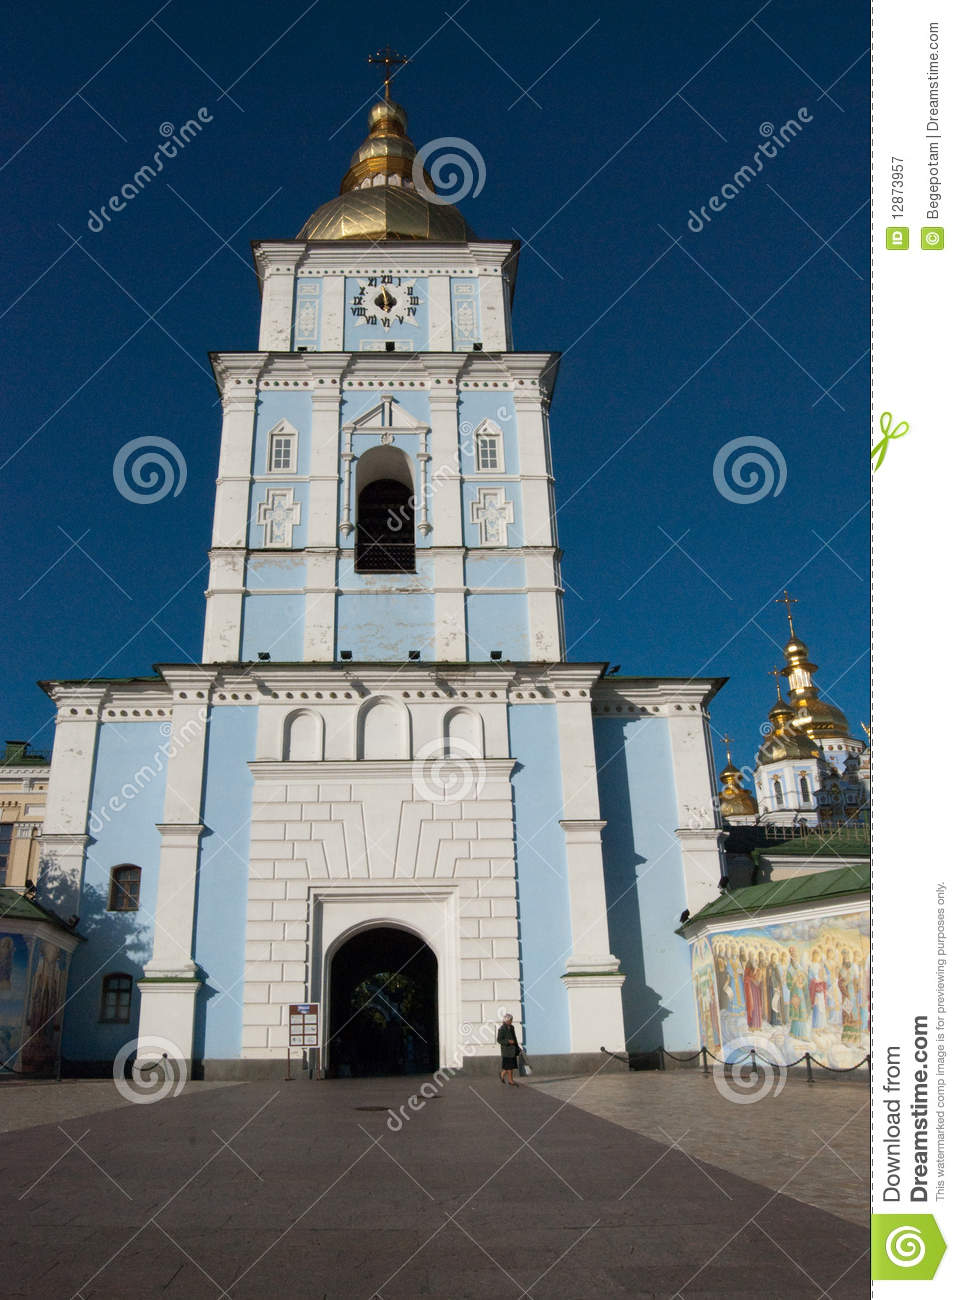 Orthodox church and wall murals kyiv royalty free stock for Church wall mural